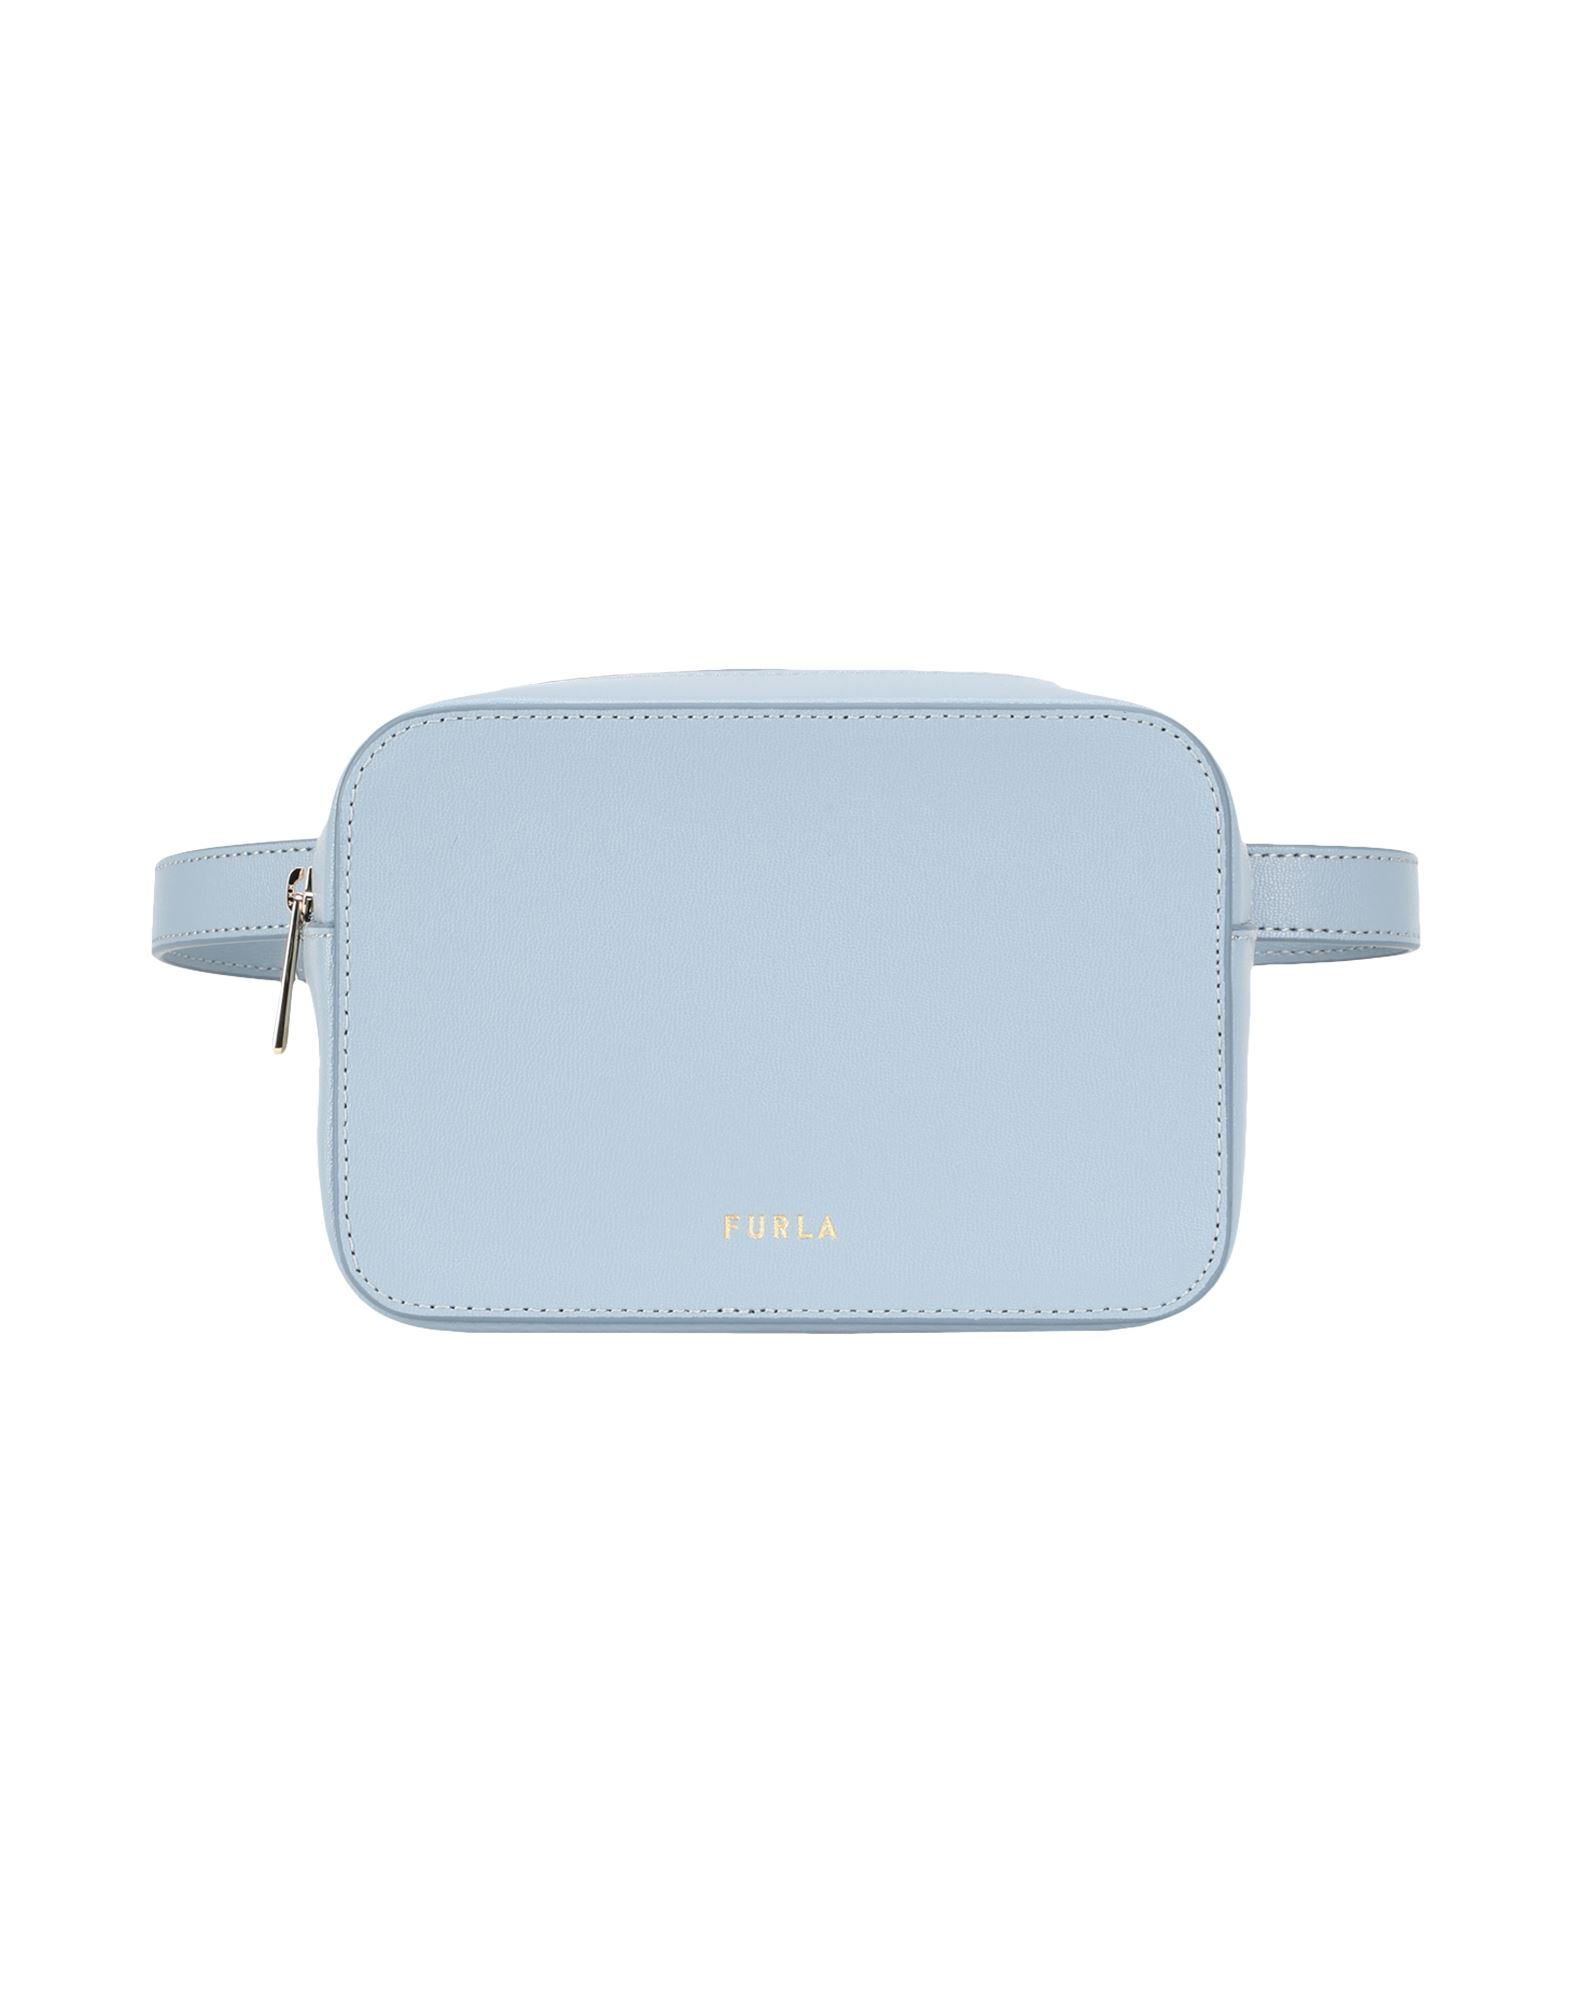 FURLA Backpacks & Fanny packs. small, logo, basic solid color, zipper closure, internal card slots, contains non-textile parts of animal origin. 100% Soft Leather